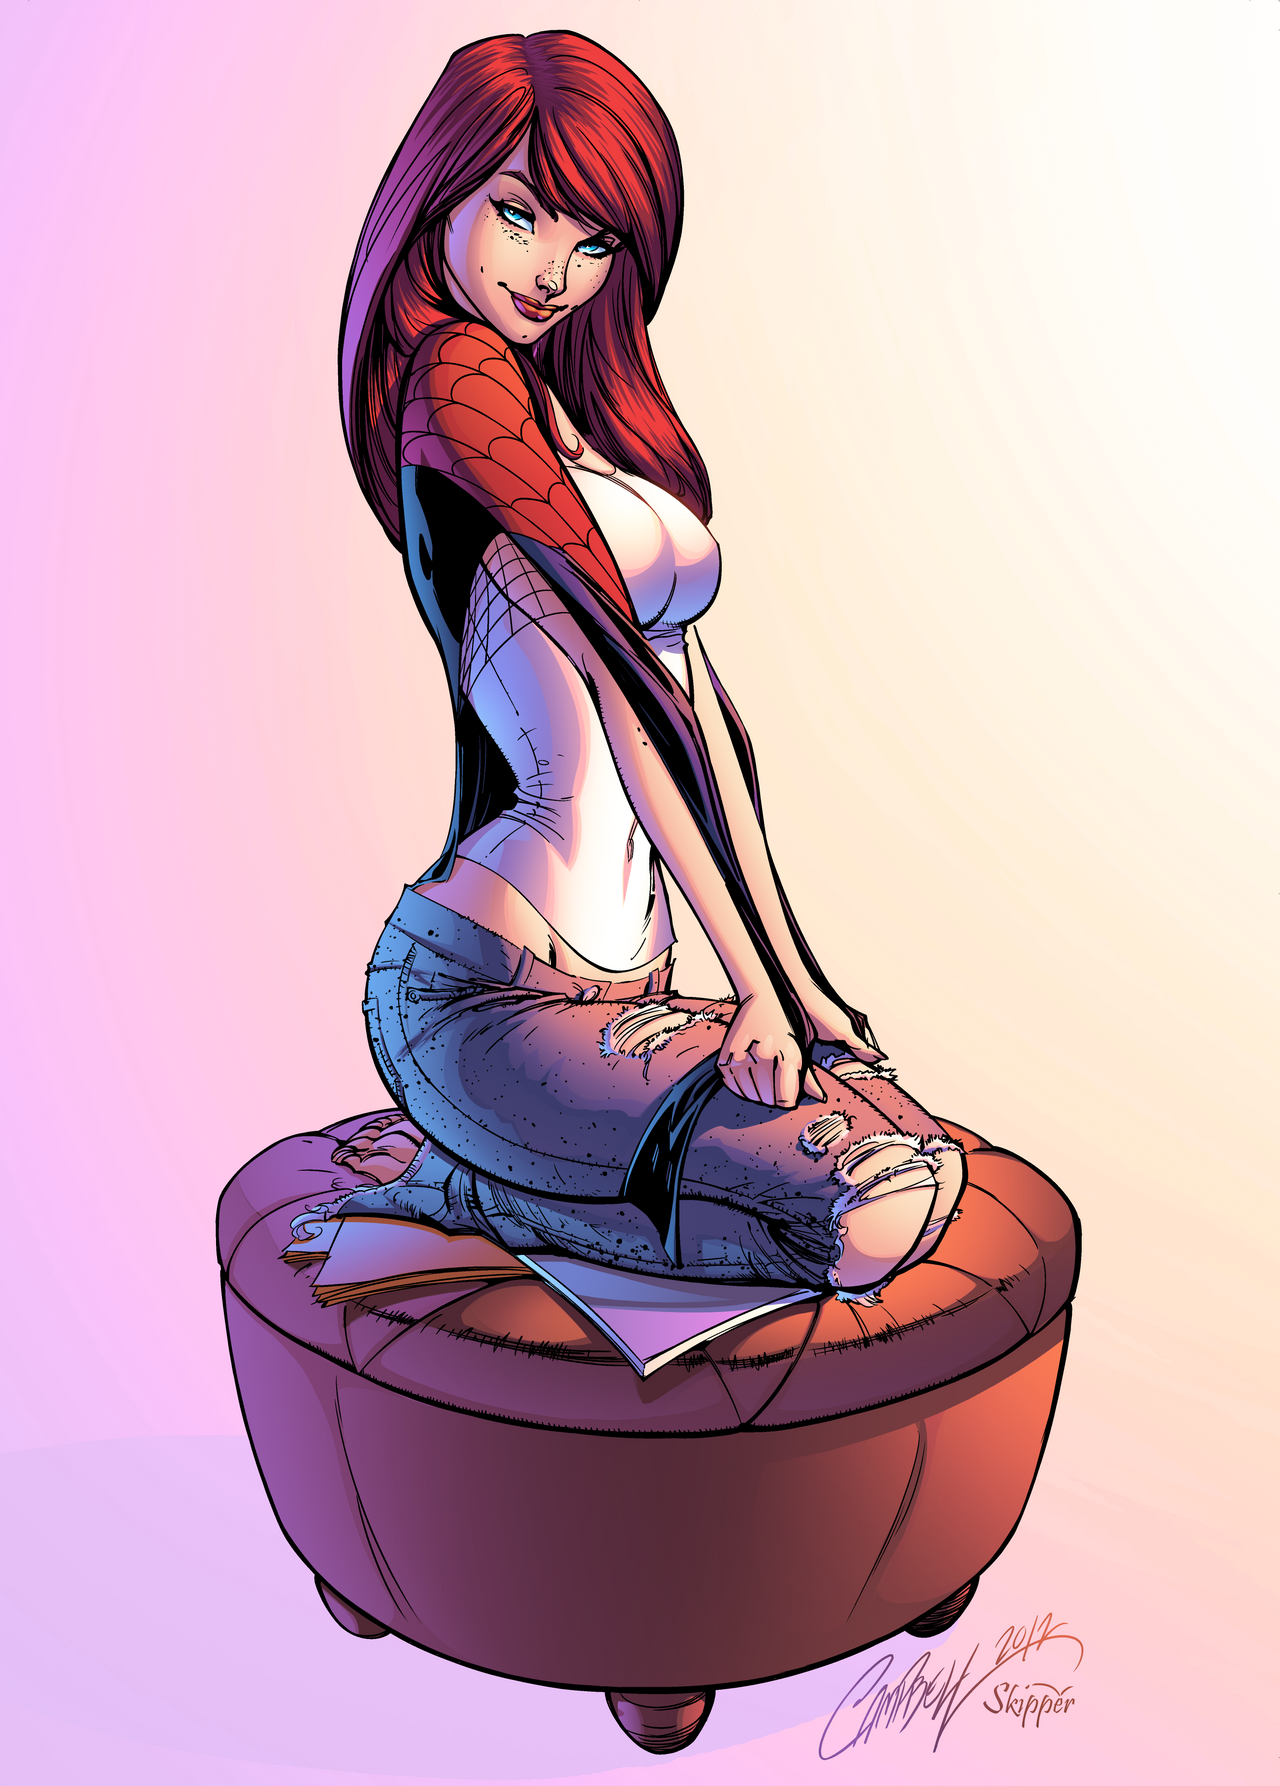 Mary Jane Watson by J-Skipper on DeviantArt